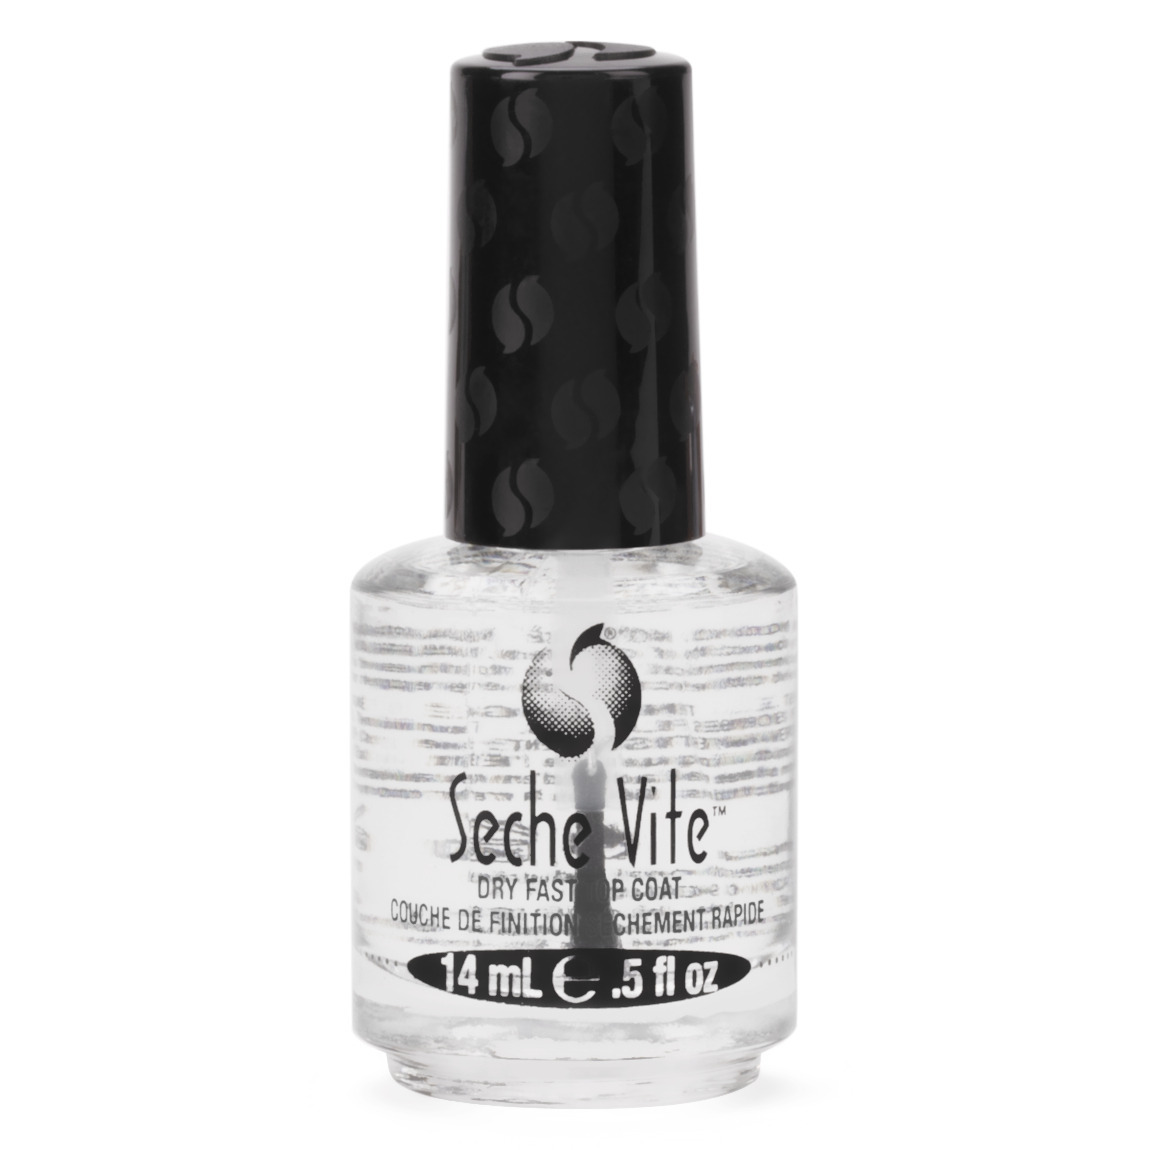 Seche Vite Dry Fast Top Coat alternative view 1 - product swatch.